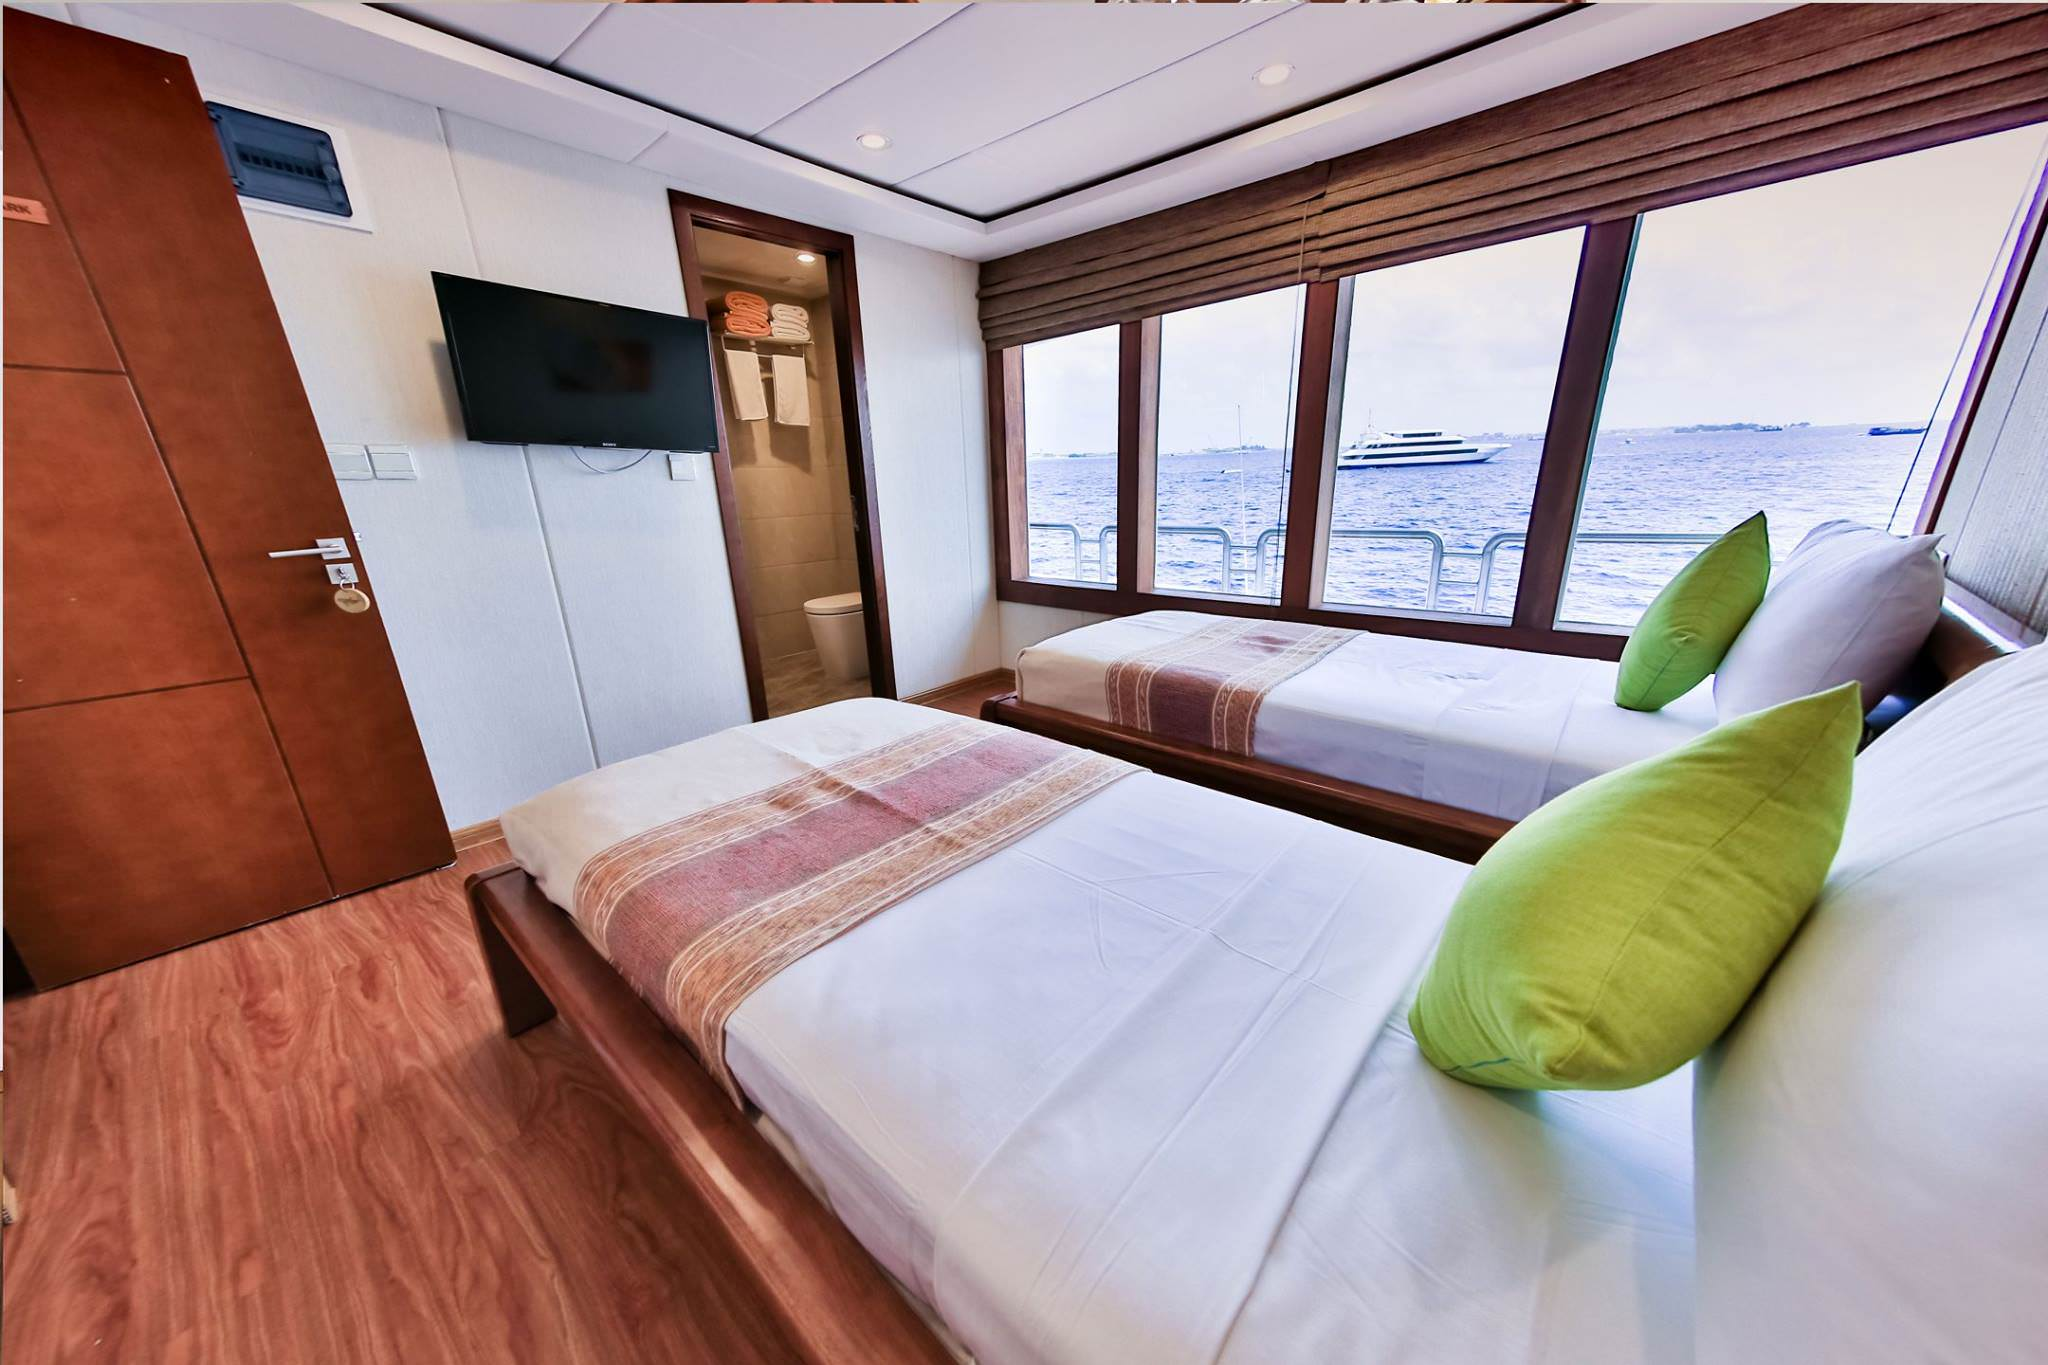 Carpe Novo Luxury Surf Charter Yacht Maldives Suite